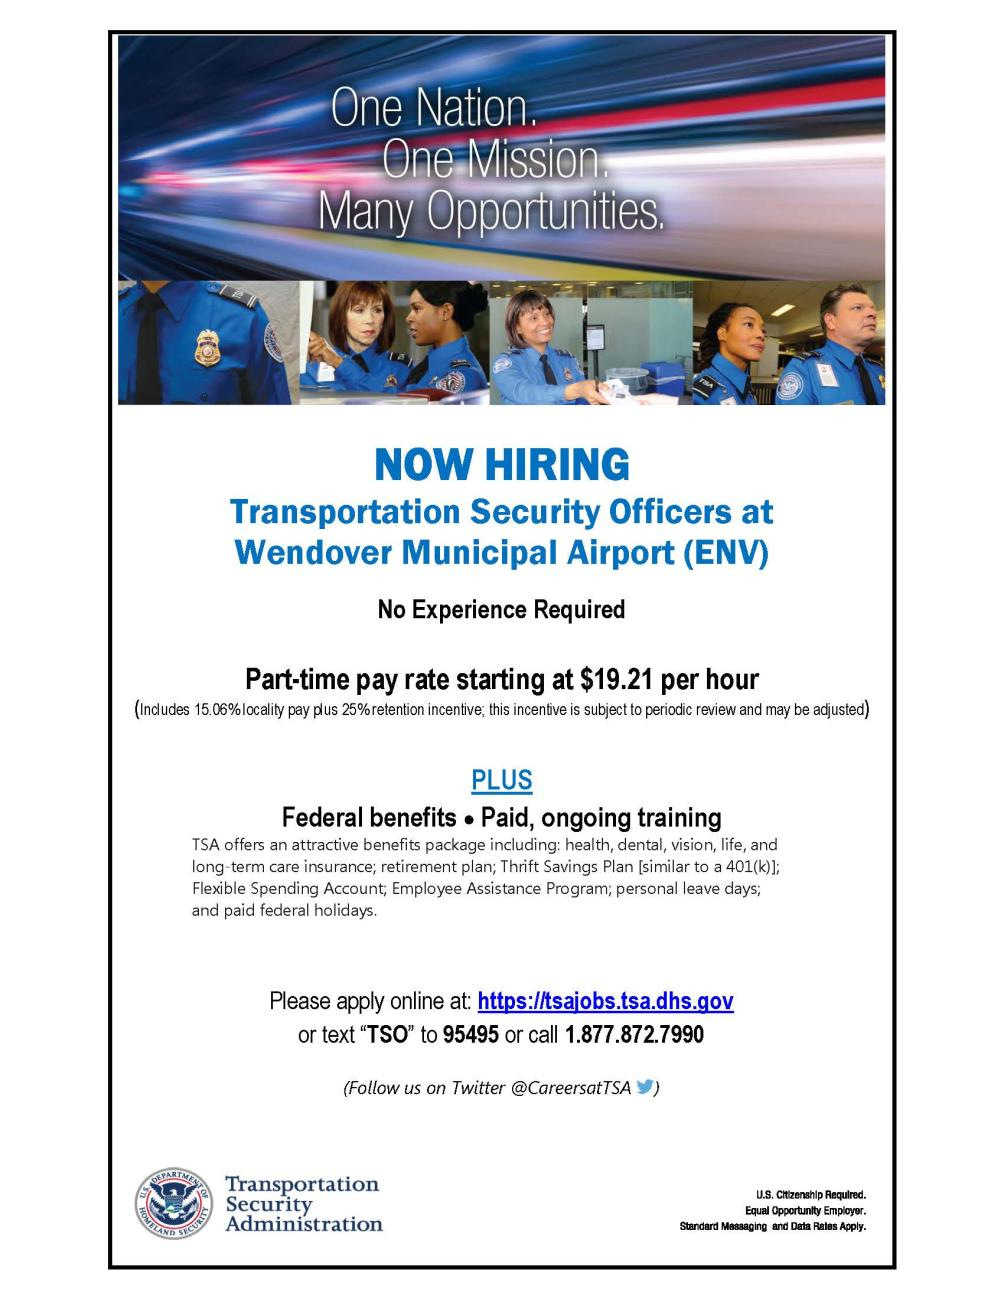 Image - TSA Employment Flyer - Wendover Airport